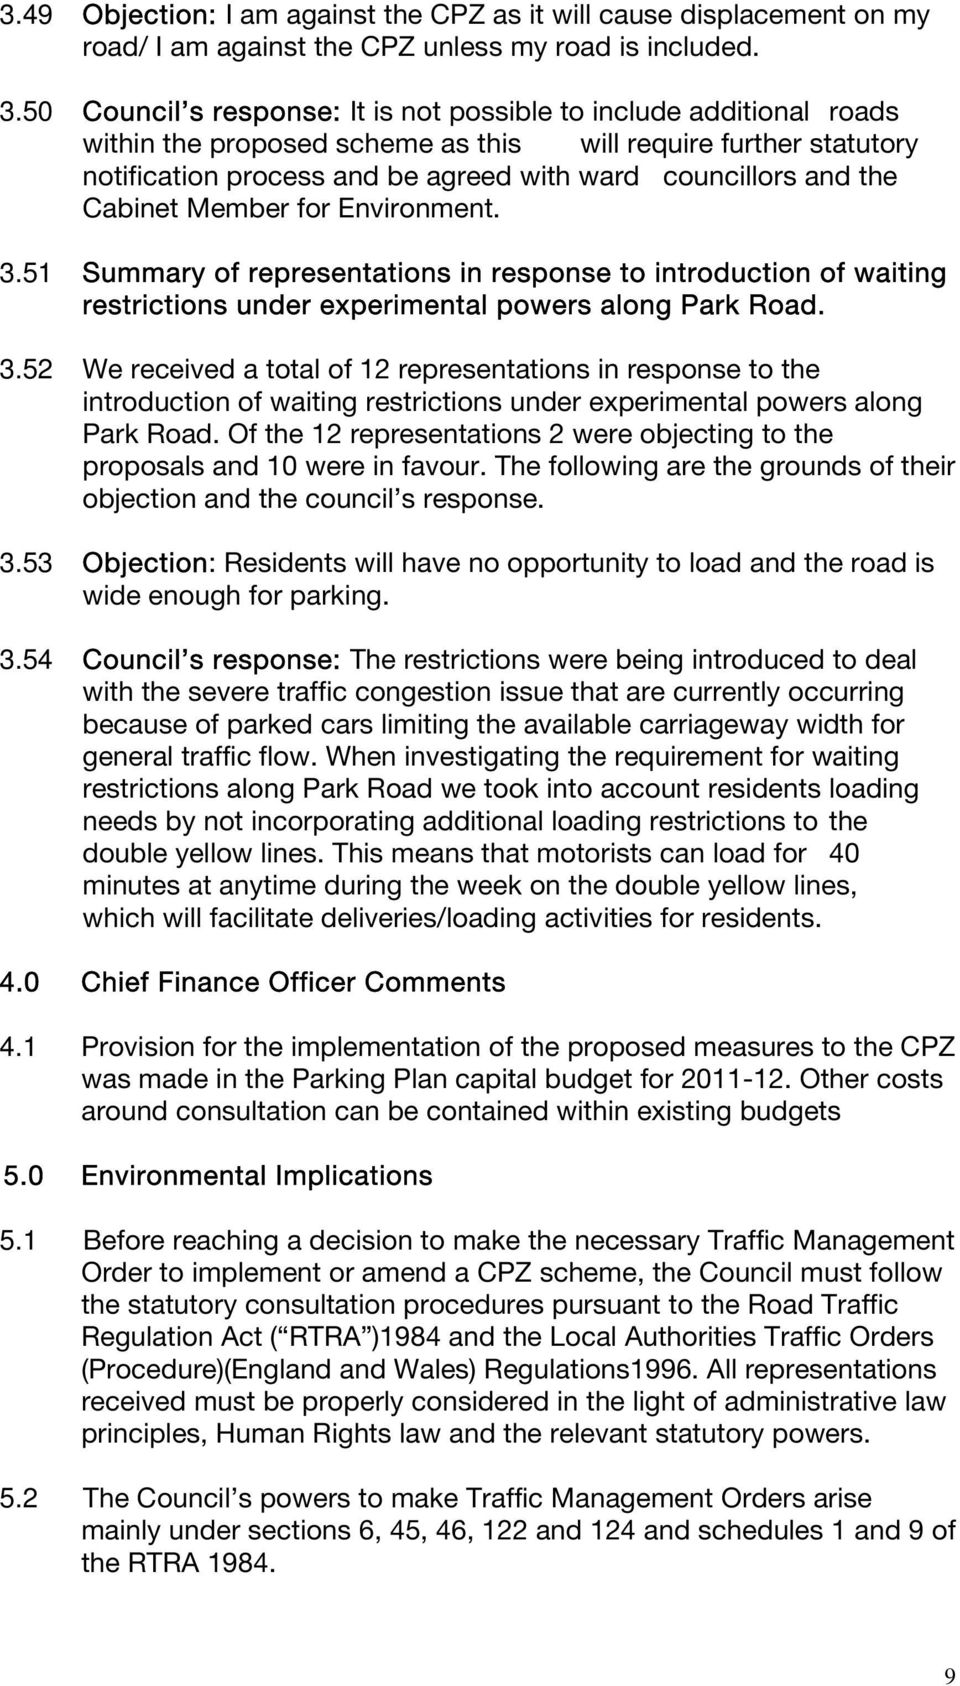 the Cabinet Member for Environment. 3.51 Summary of representations in response to introduction of waiting restrictions under experimental powers along Park Road. 3.52 We received a total of 12 representations in response to the introduction of waiting restrictions under experimental powers along Park Road.